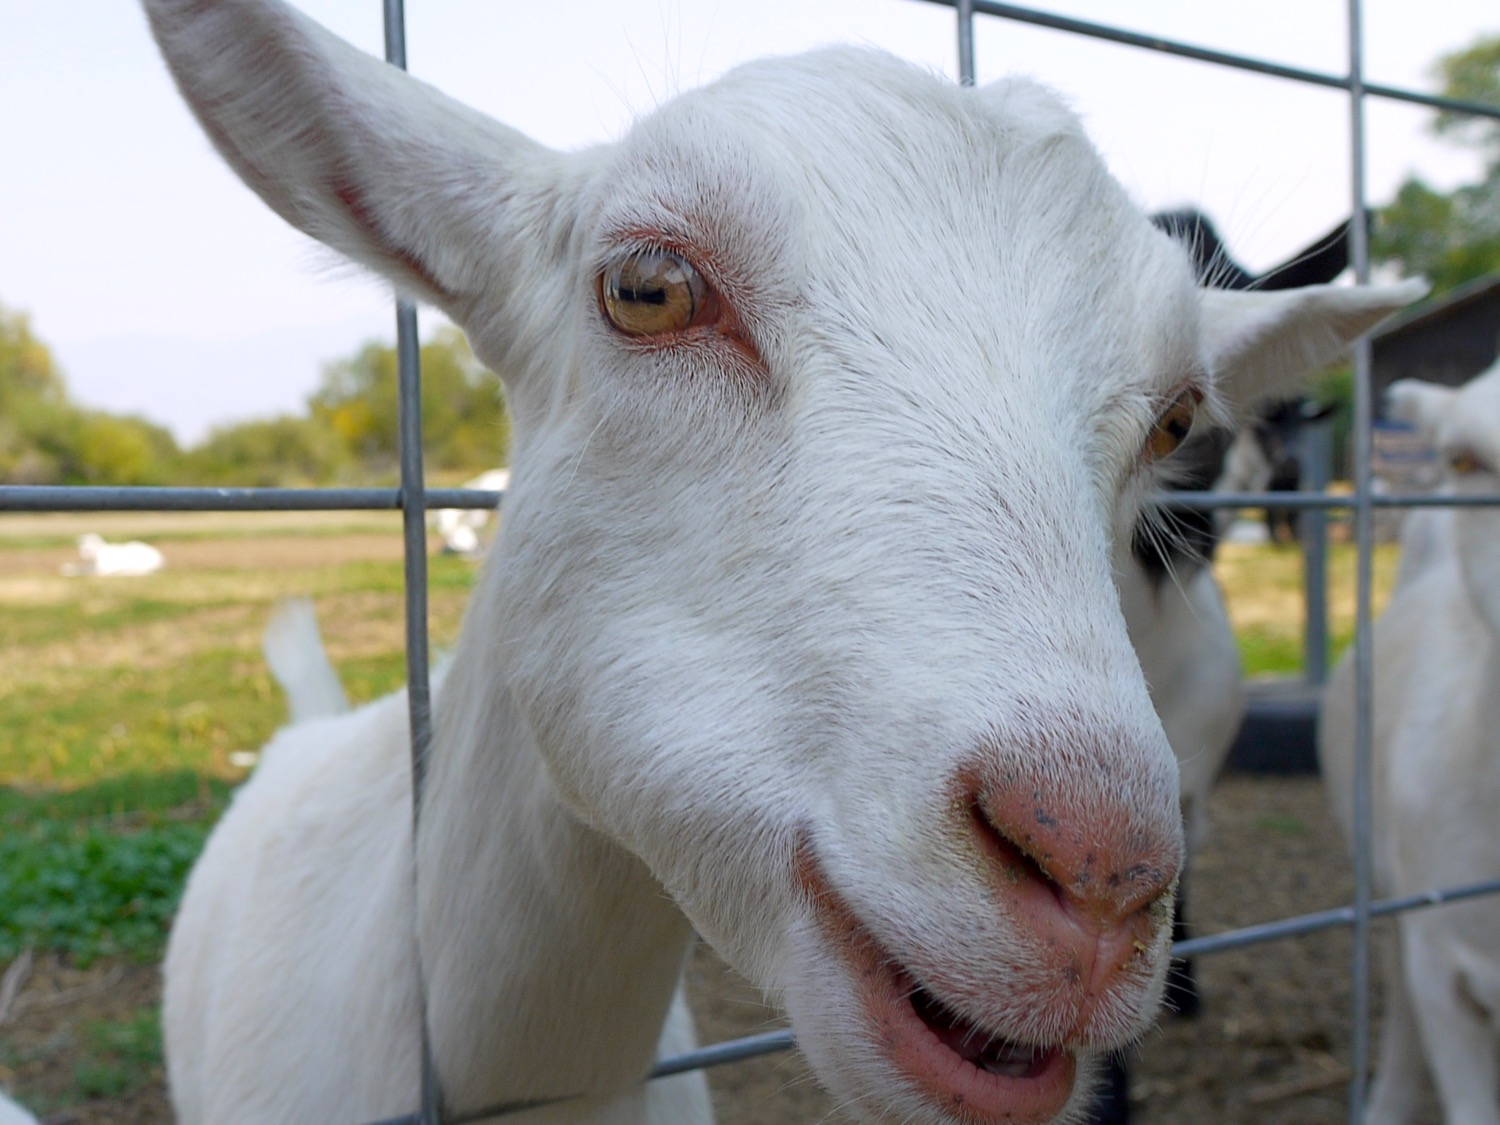 A curious goat at Amaltheia Dairy, Bozeman, Montana. (Photo by Emily Stifler Wolfe)